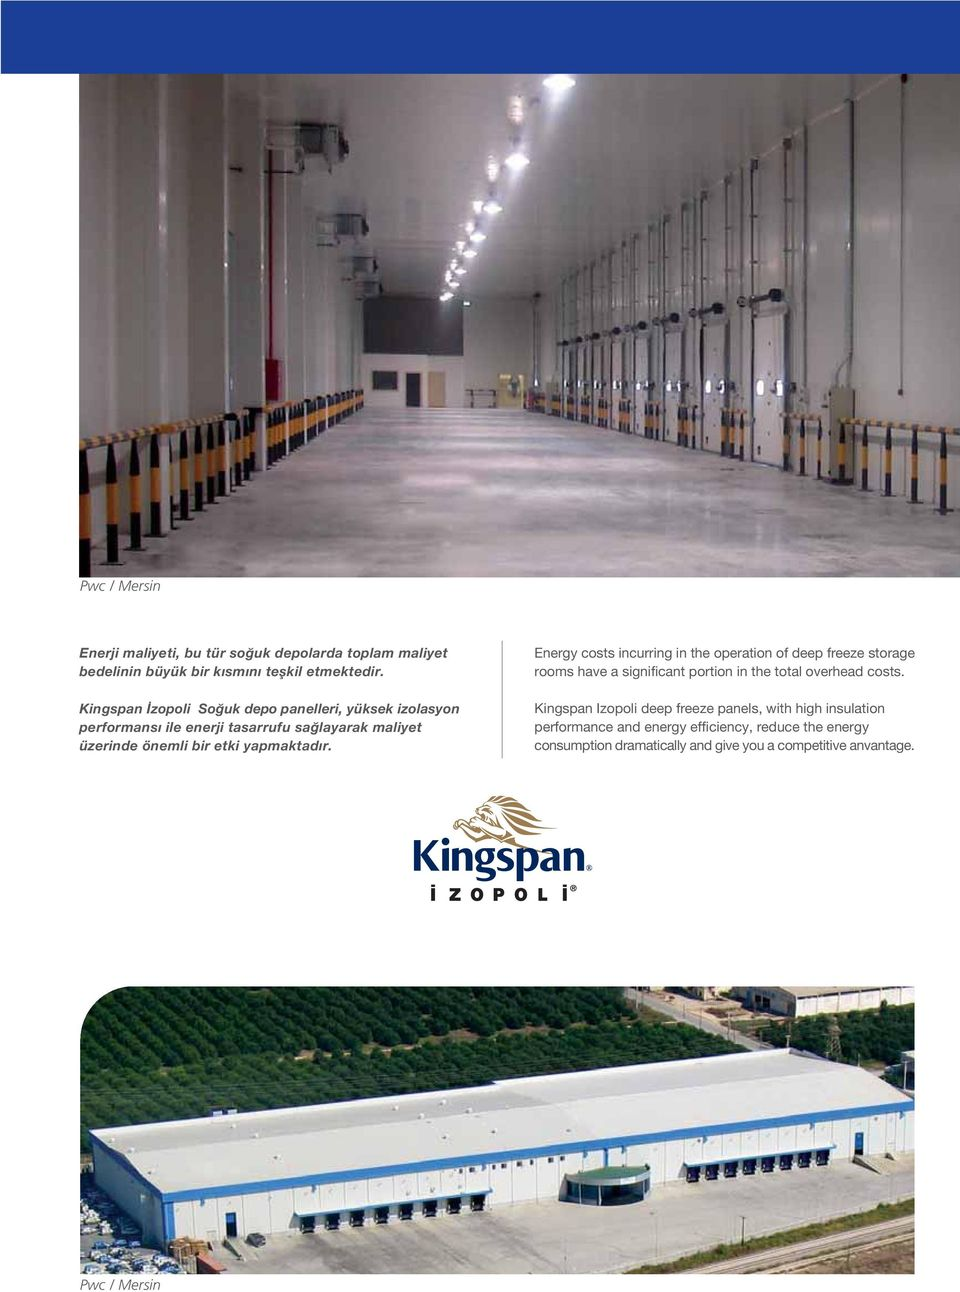 r. Energy costs incurring in the operation of deep freeze storage rooms have a significant portion in the total overhead costs.